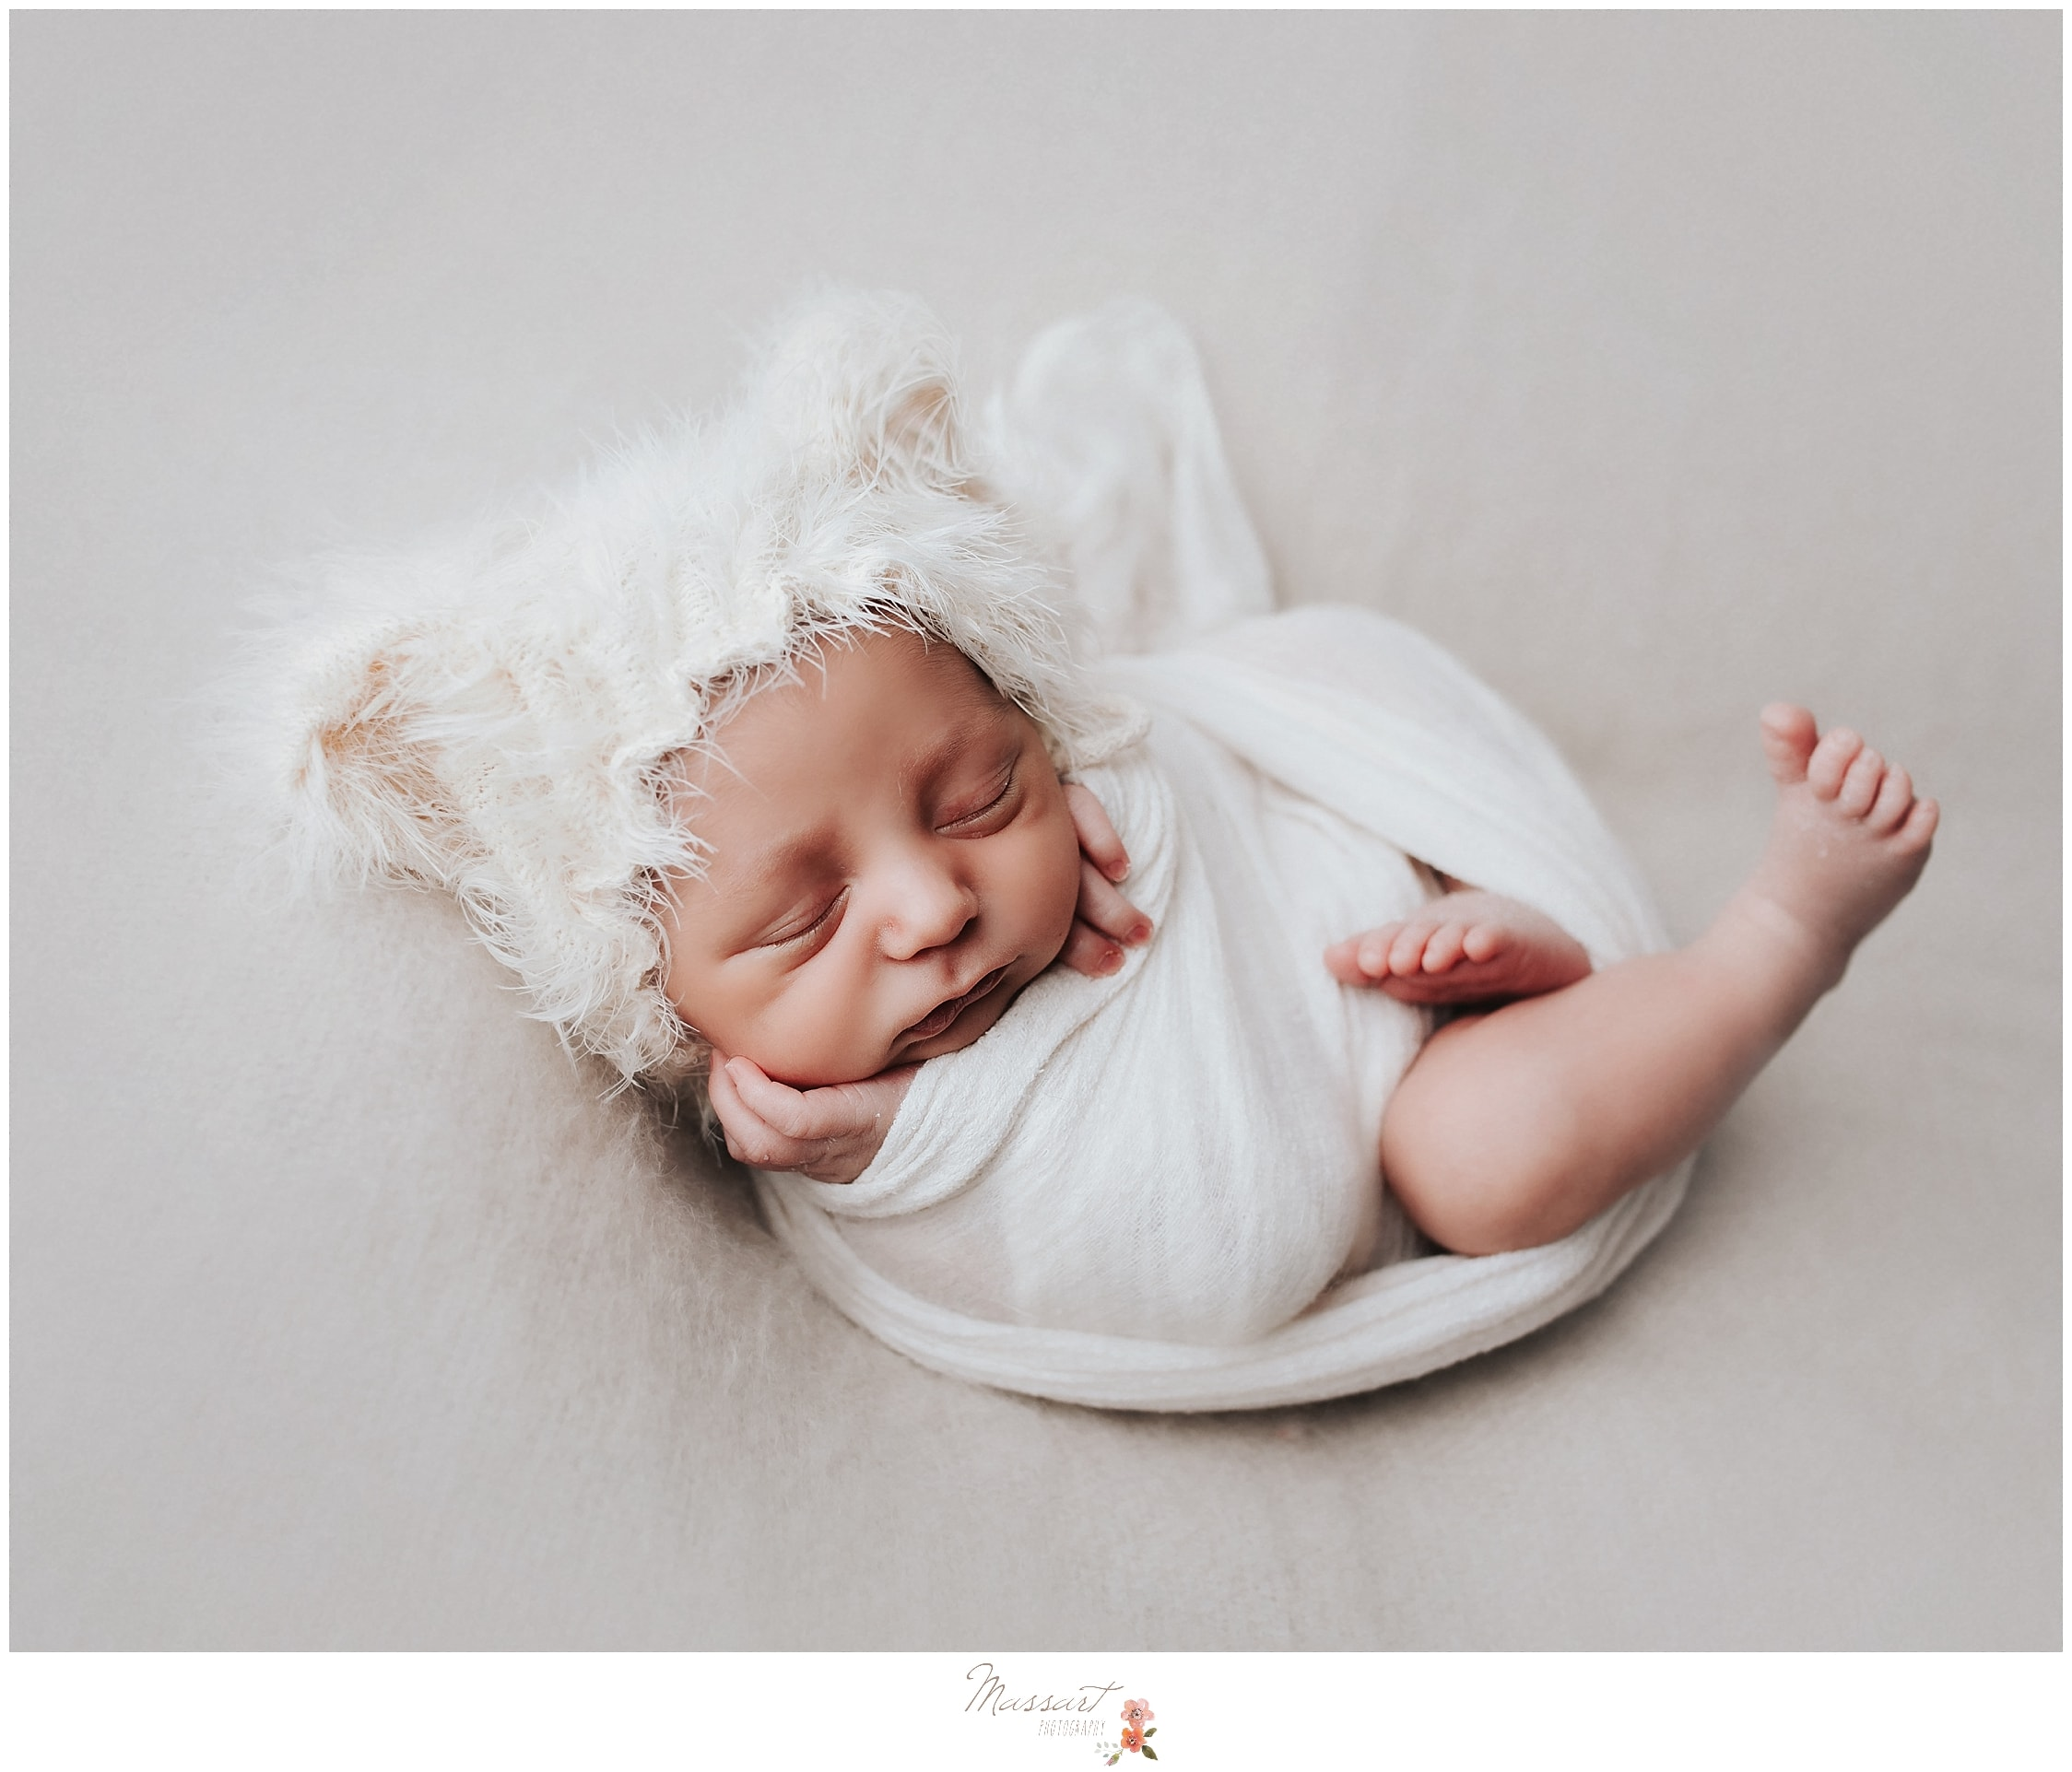 Newborn photographers from Massart Photography capture a baby portrait during a newborn session in Rhode Island